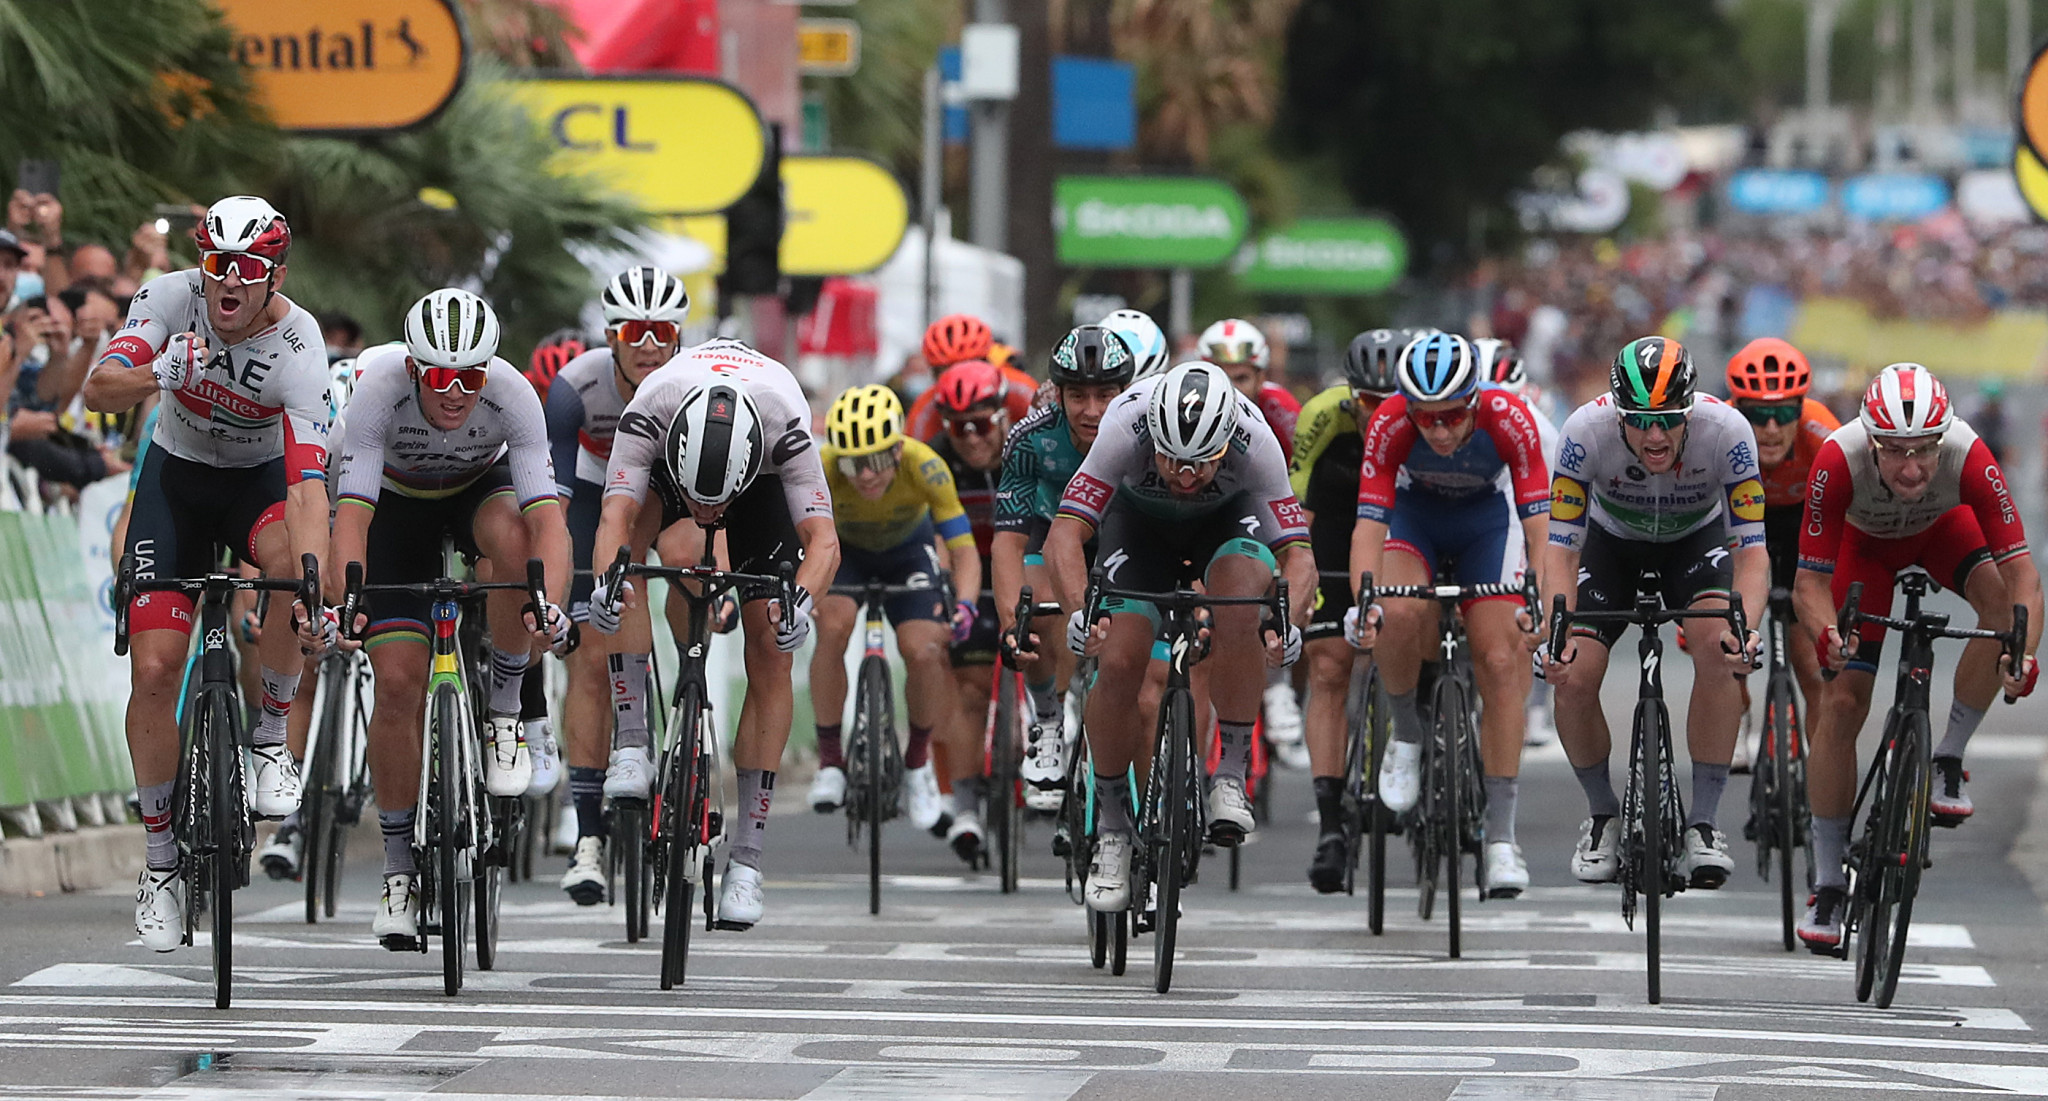 Kristoff takes first yellow jersey on crash filled opening day of Tour de France